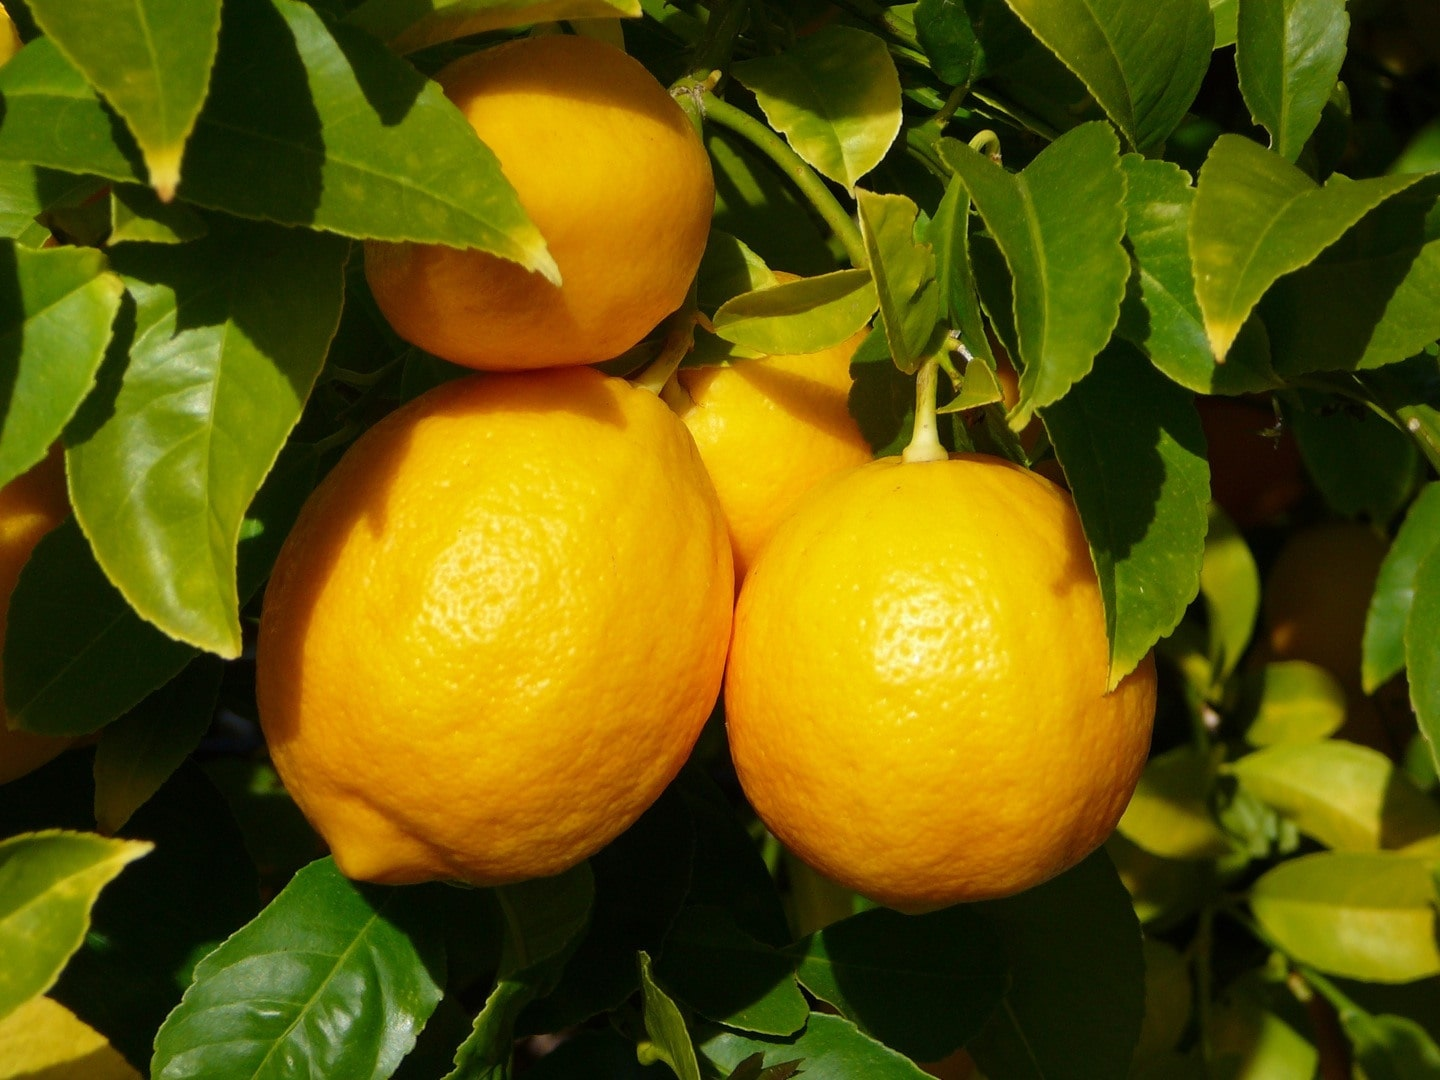 Citron jaune, lemon